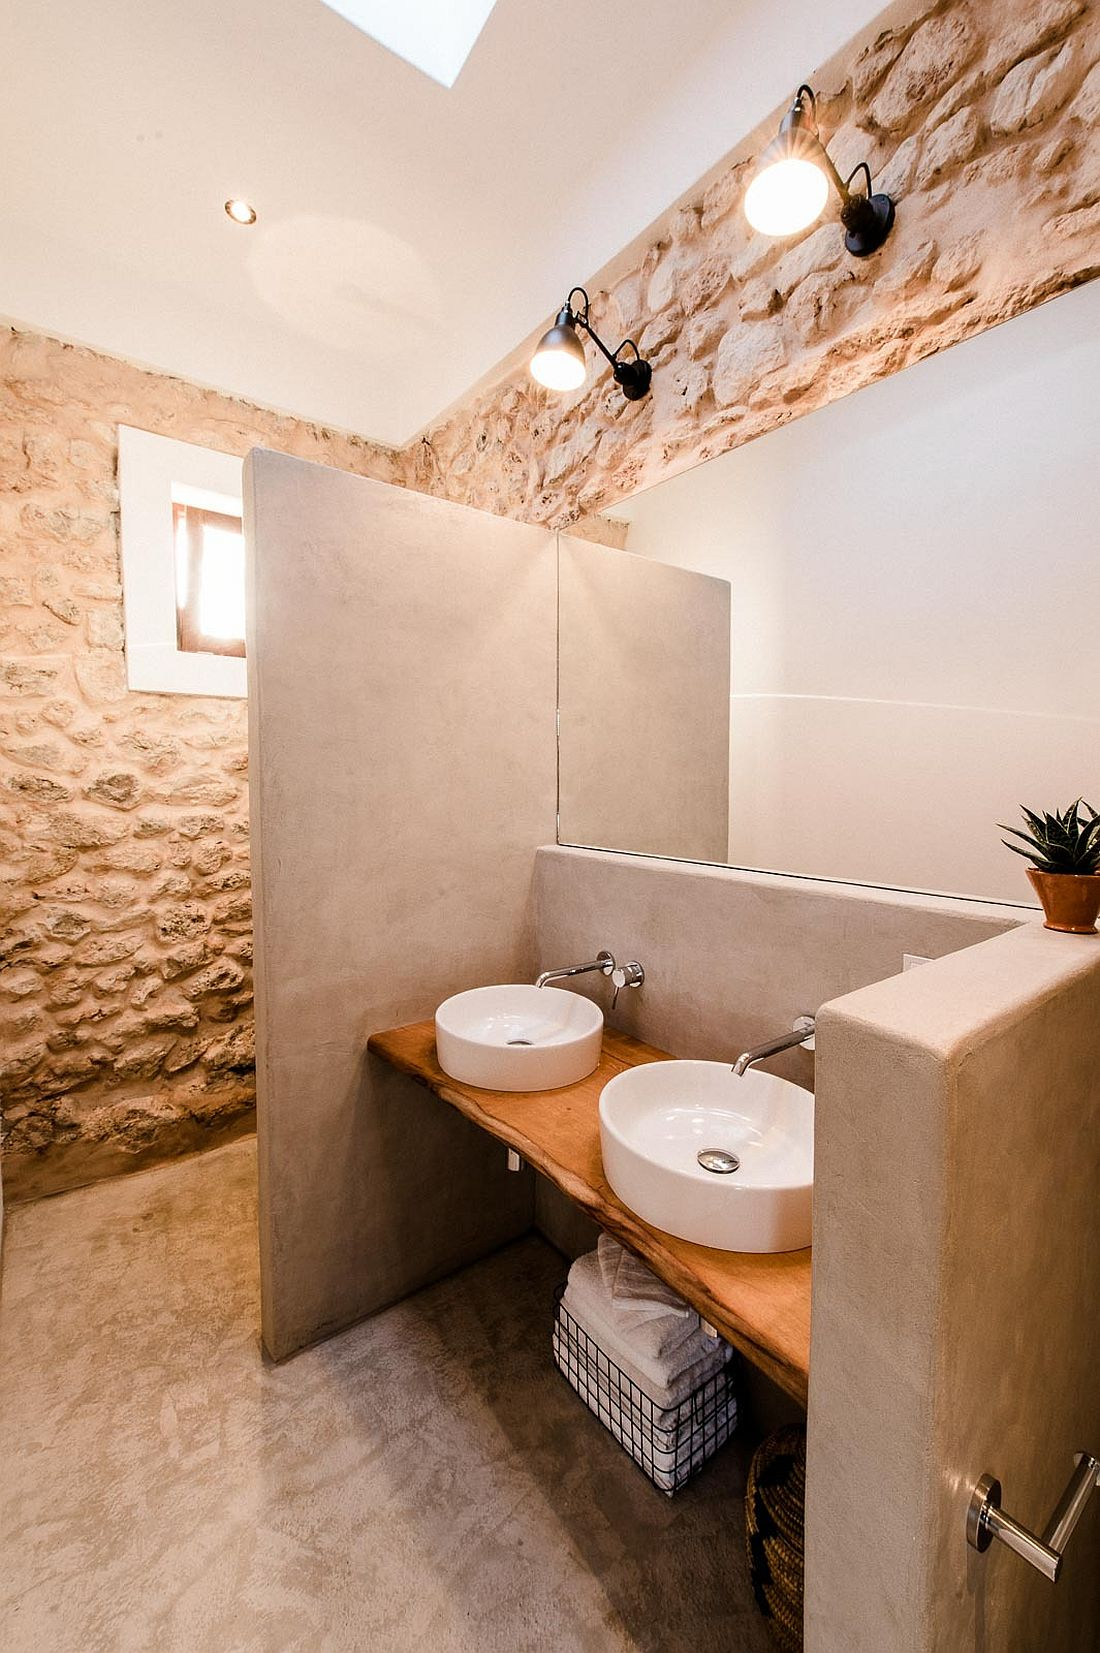 Classic stone walls coupled with modern aesthetics and live edge vanity in the bathroom